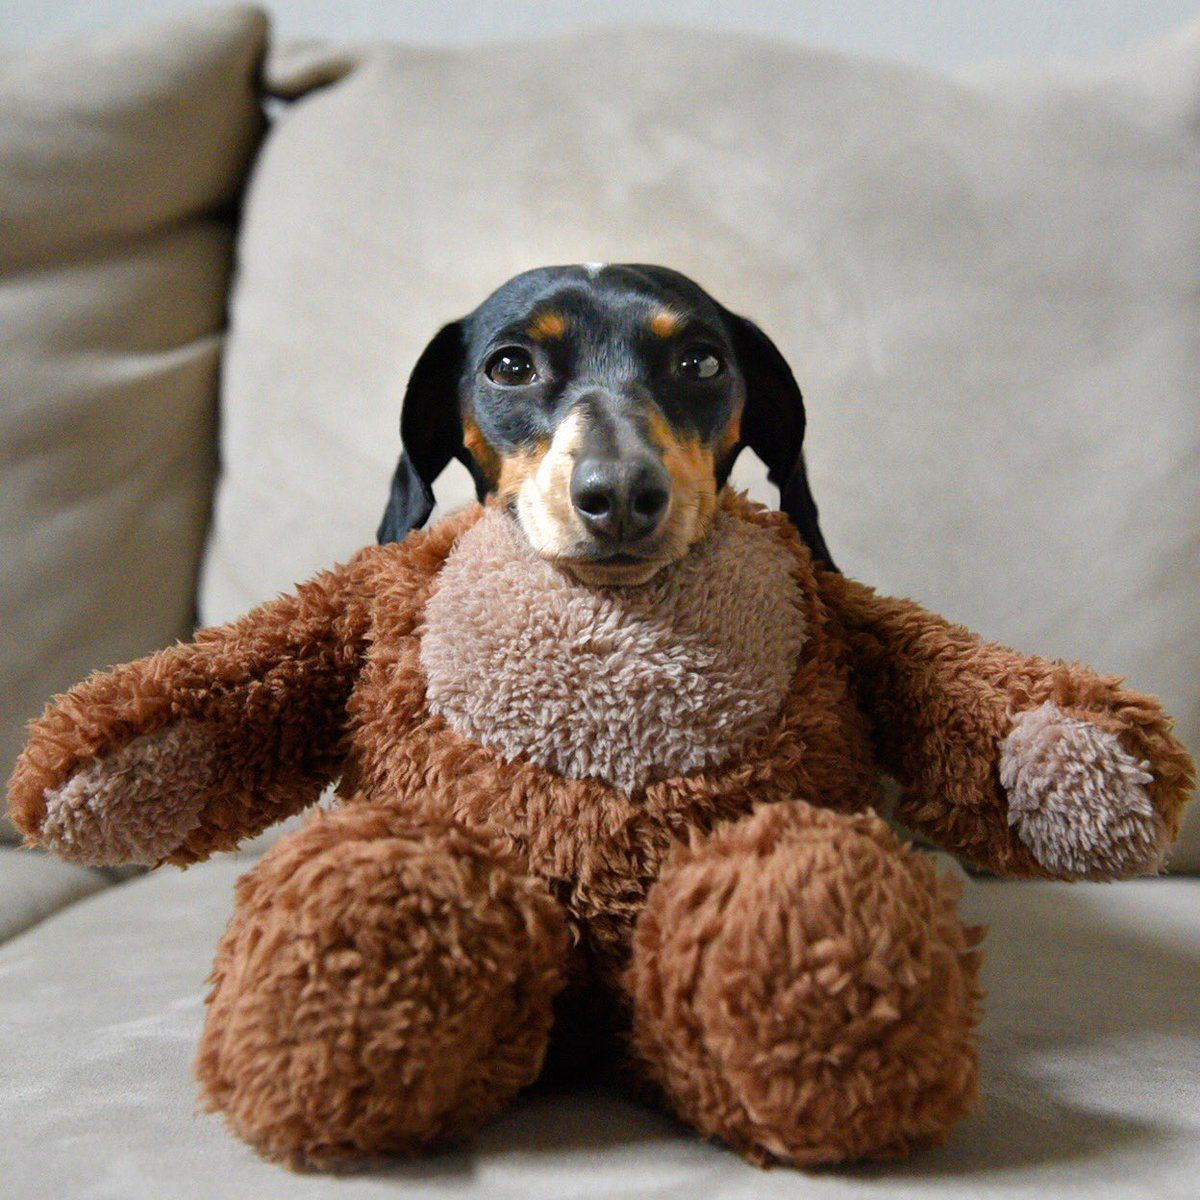 Adorable little reese the dachshund puppy pretending to be a teddy